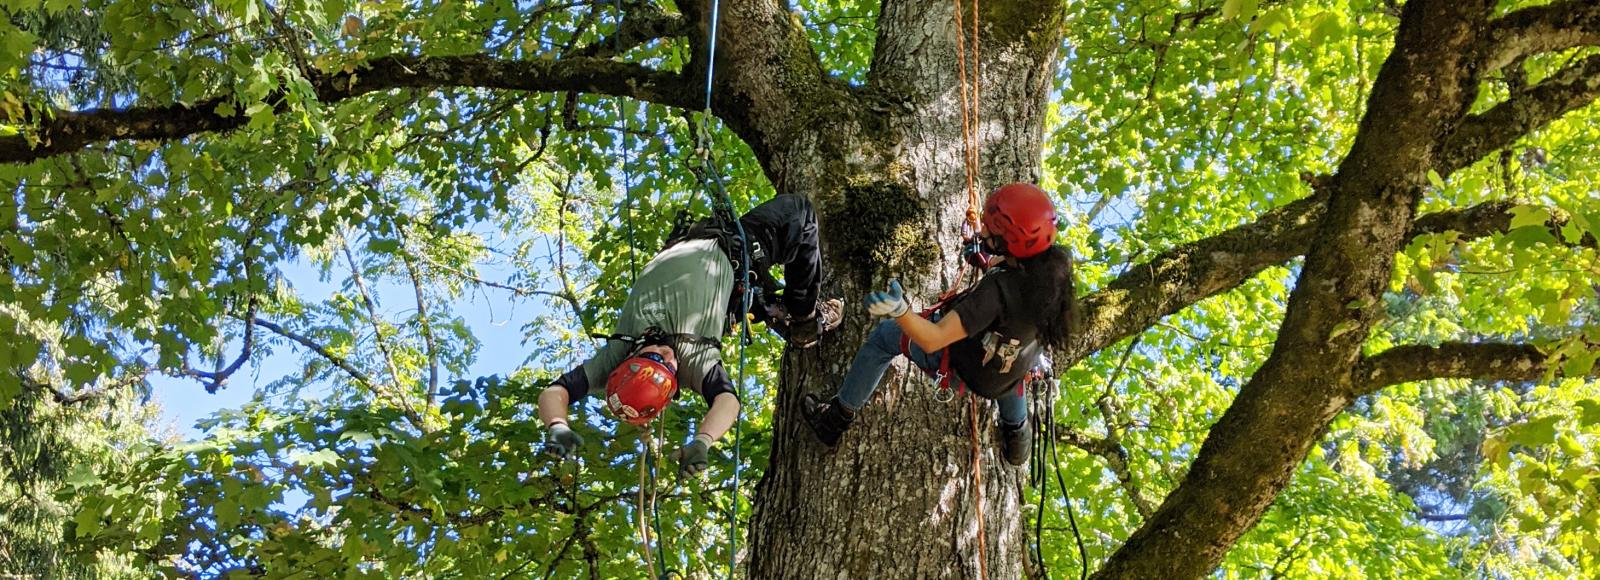 An instructor and a young person, both wearing helmets and harnesses, are attached to ropes and climbing high in a large tree